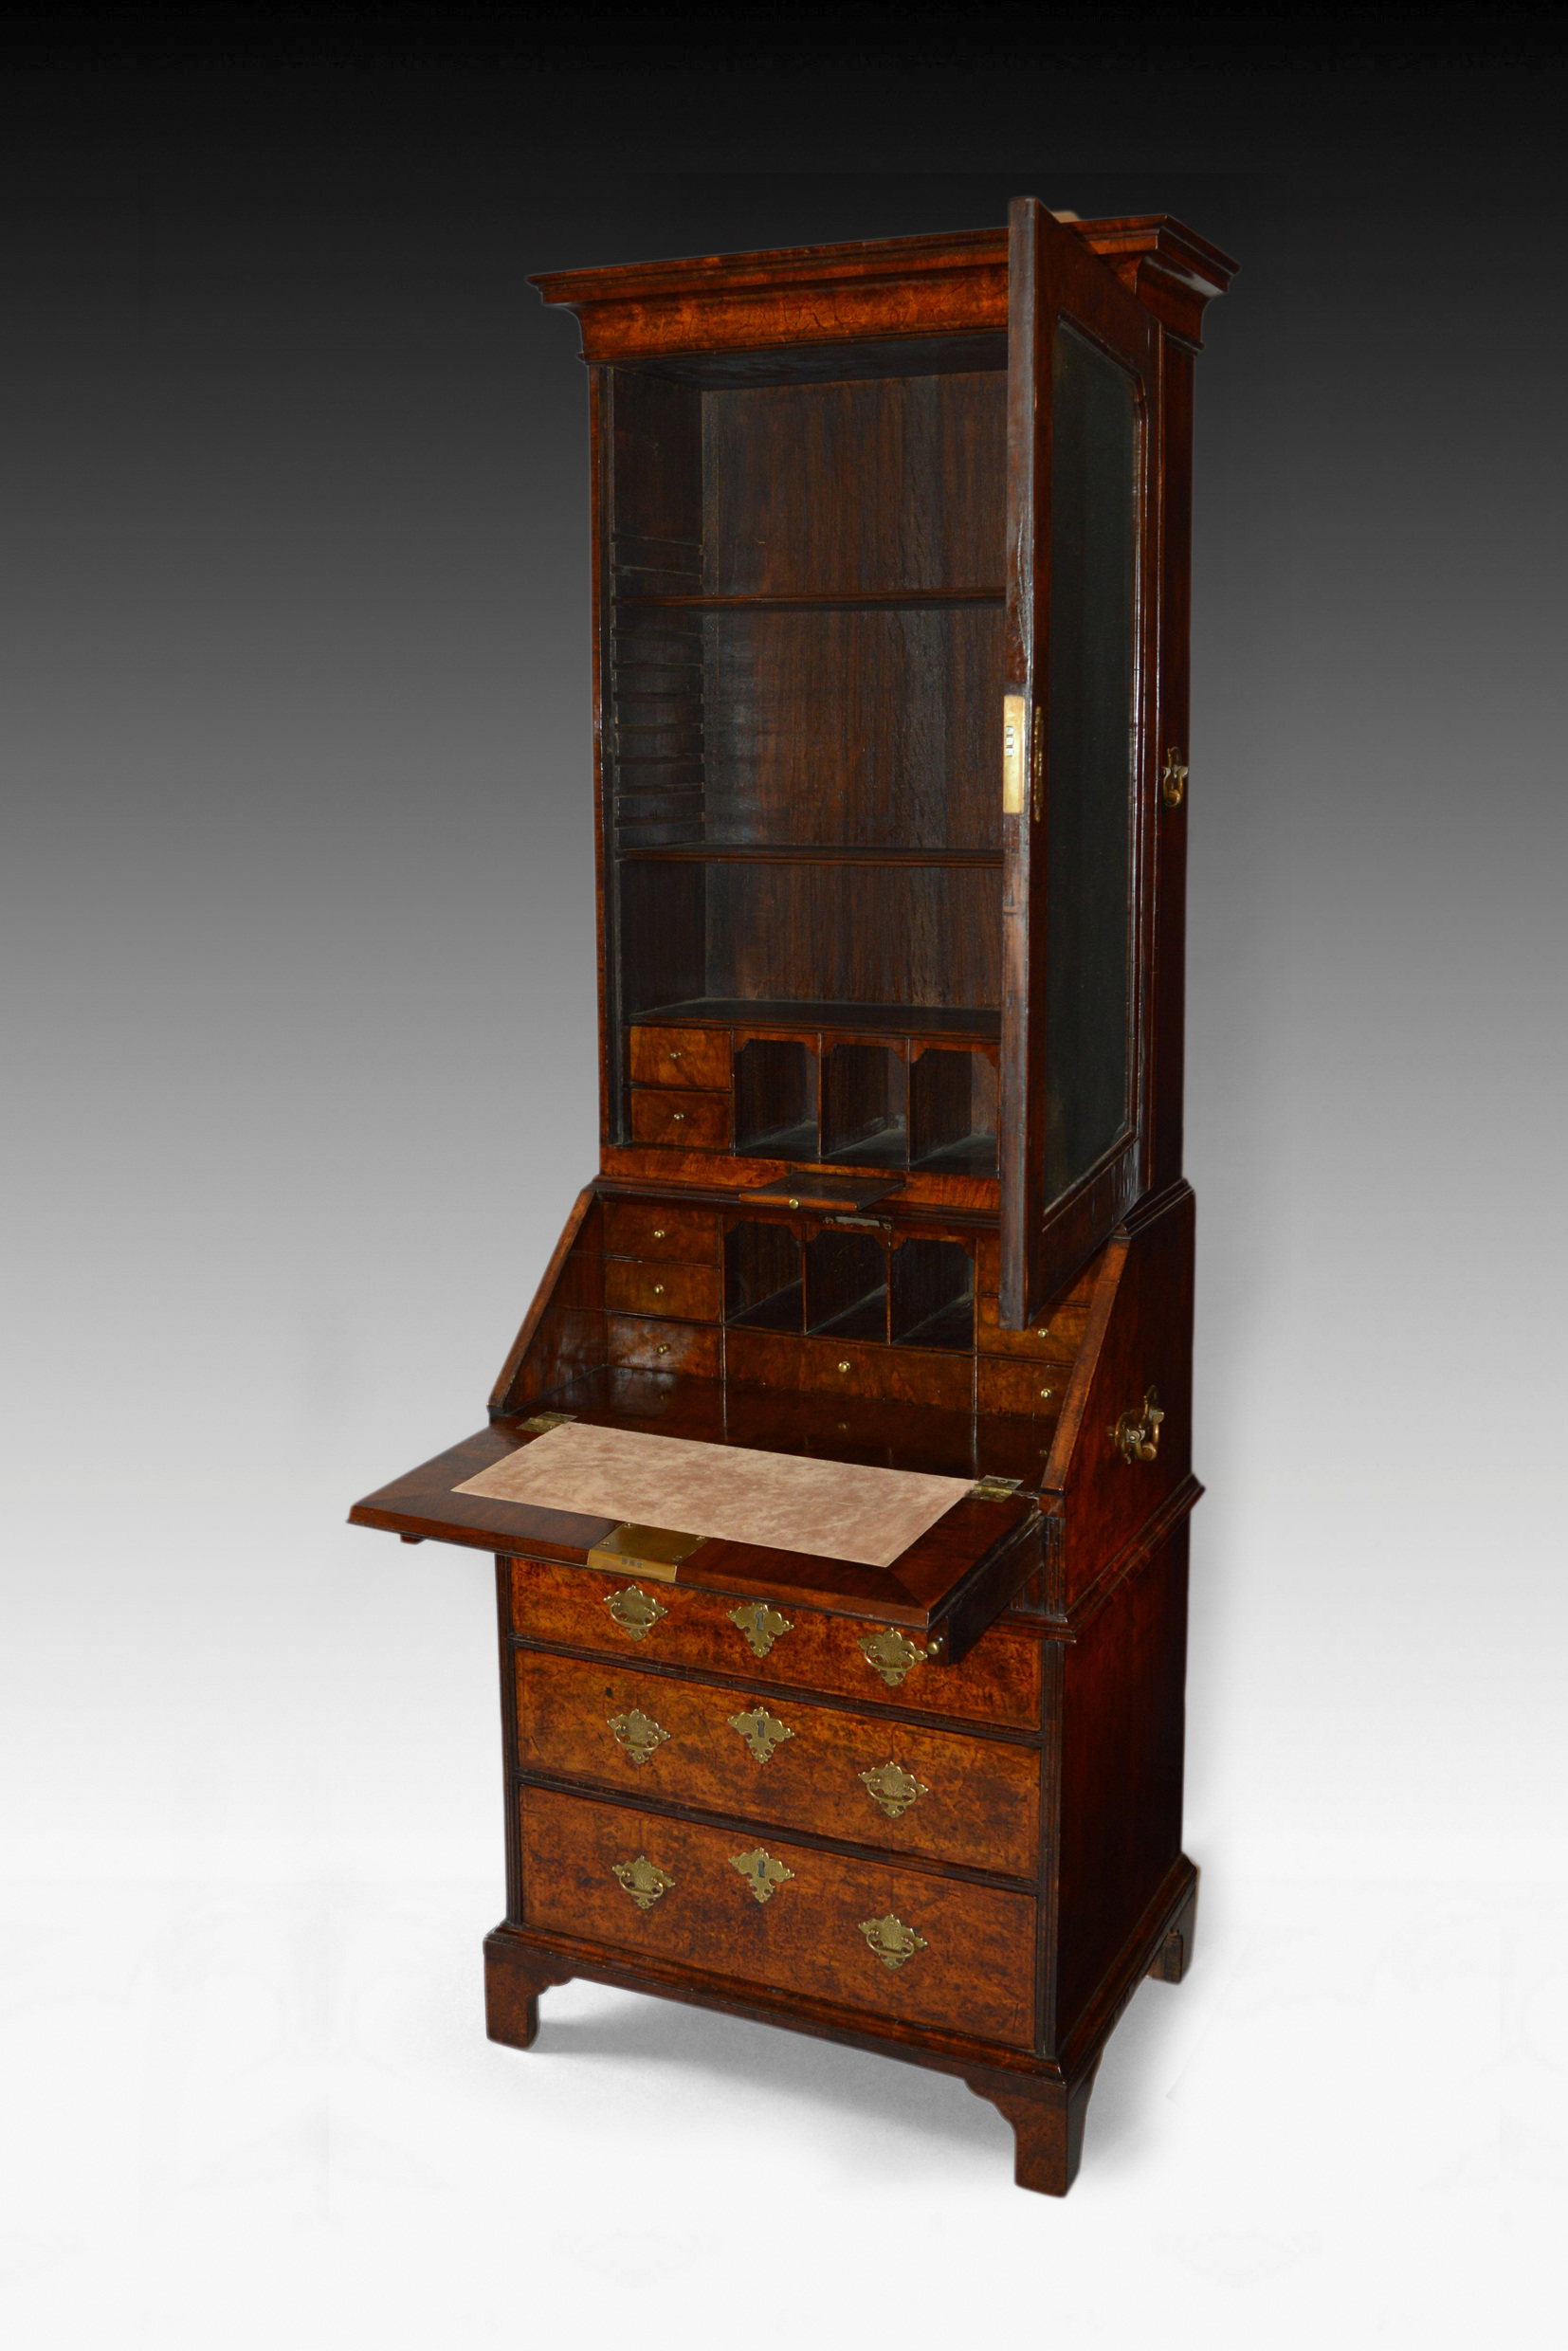 antique rare small size queen anne walnut bureau bookcase. Black Bedroom Furniture Sets. Home Design Ideas